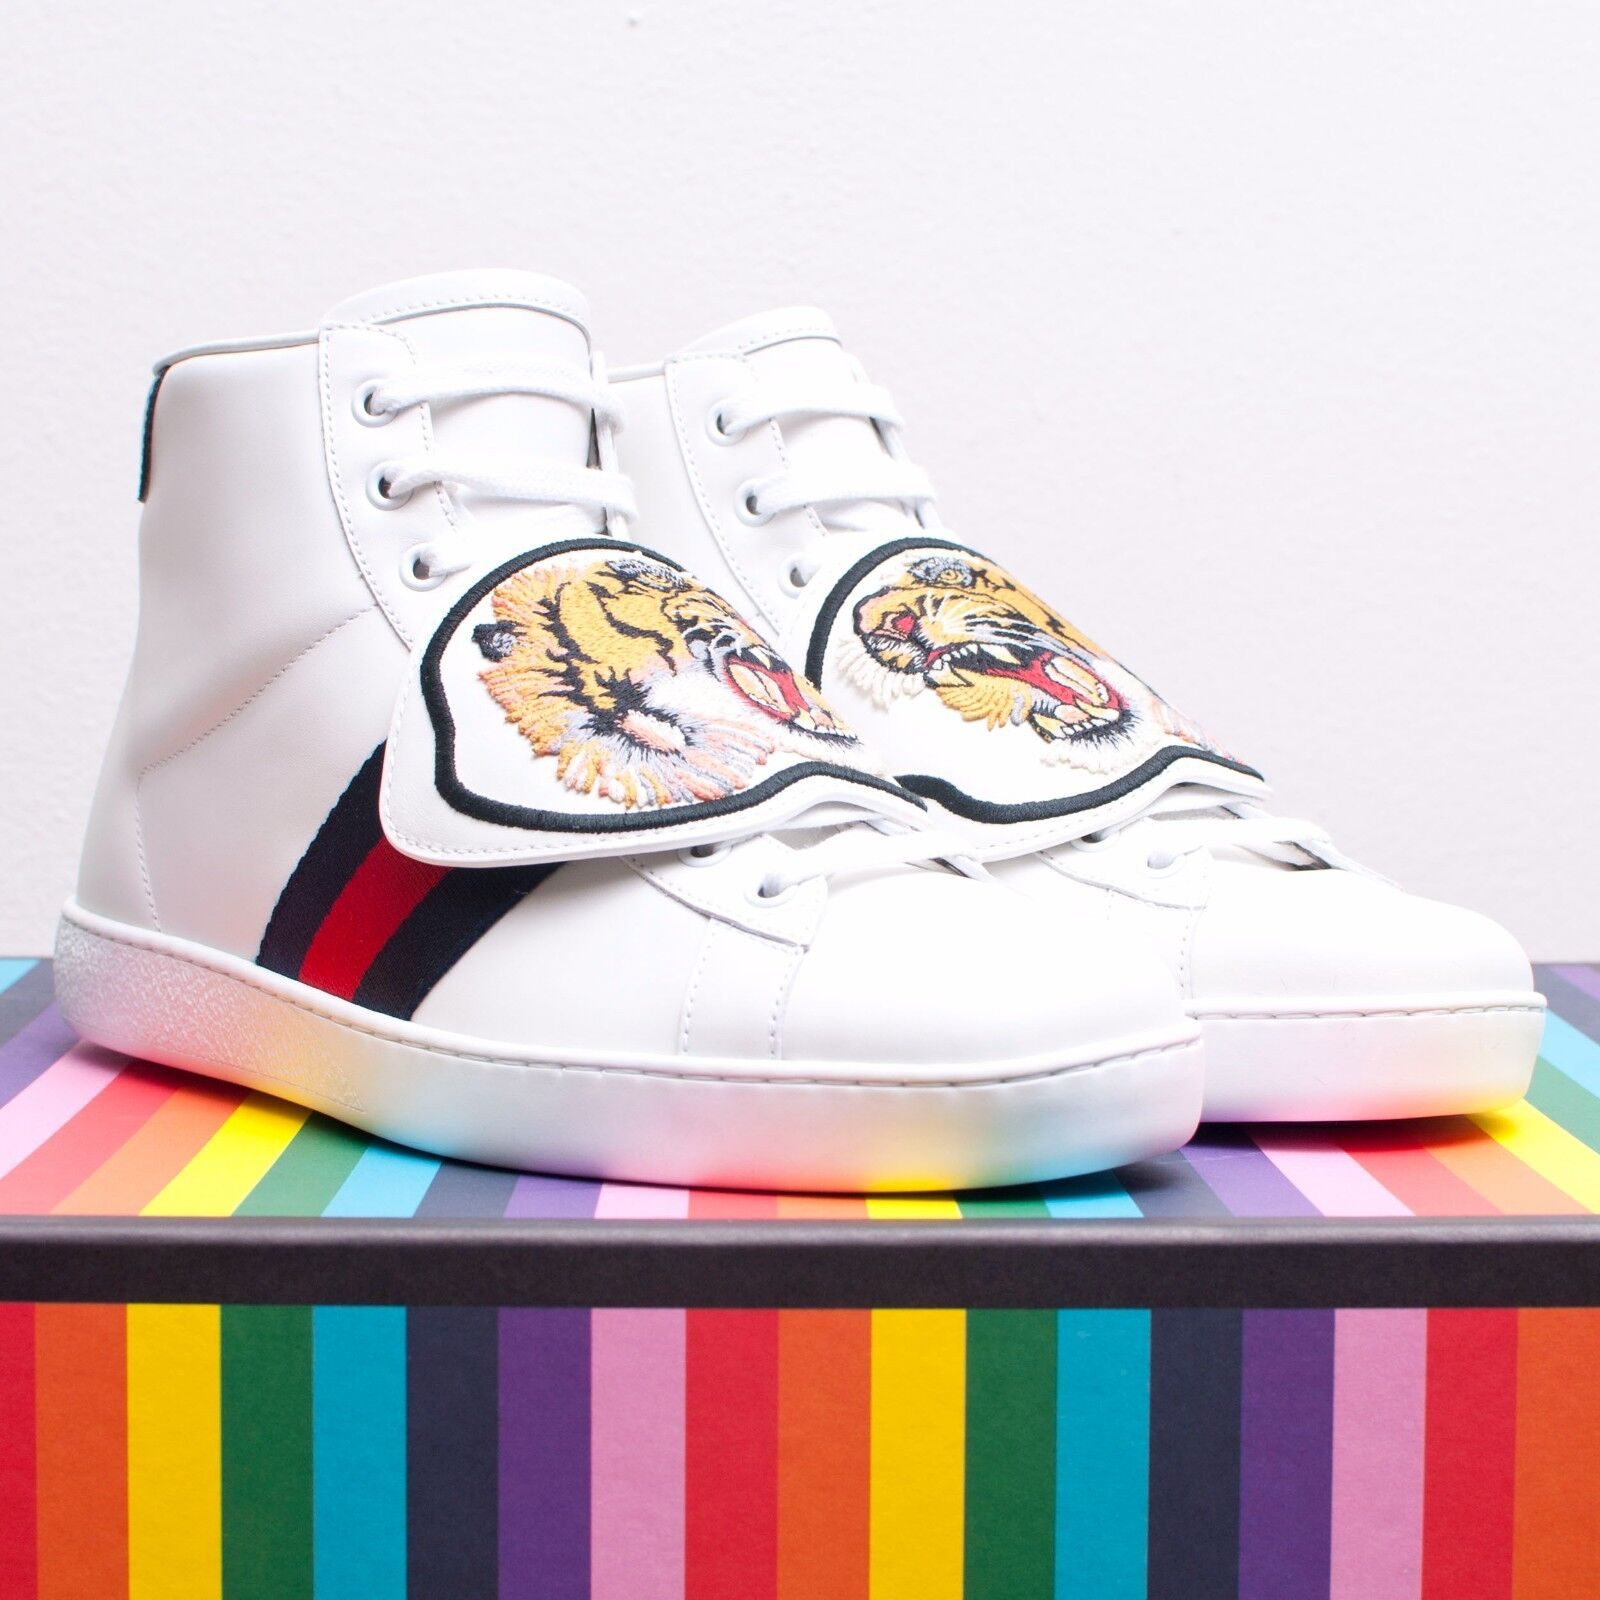 4e90b5f20 Details about GUCCI 970$ Ace High Top Sneakers In White Leather With  Removable Patches